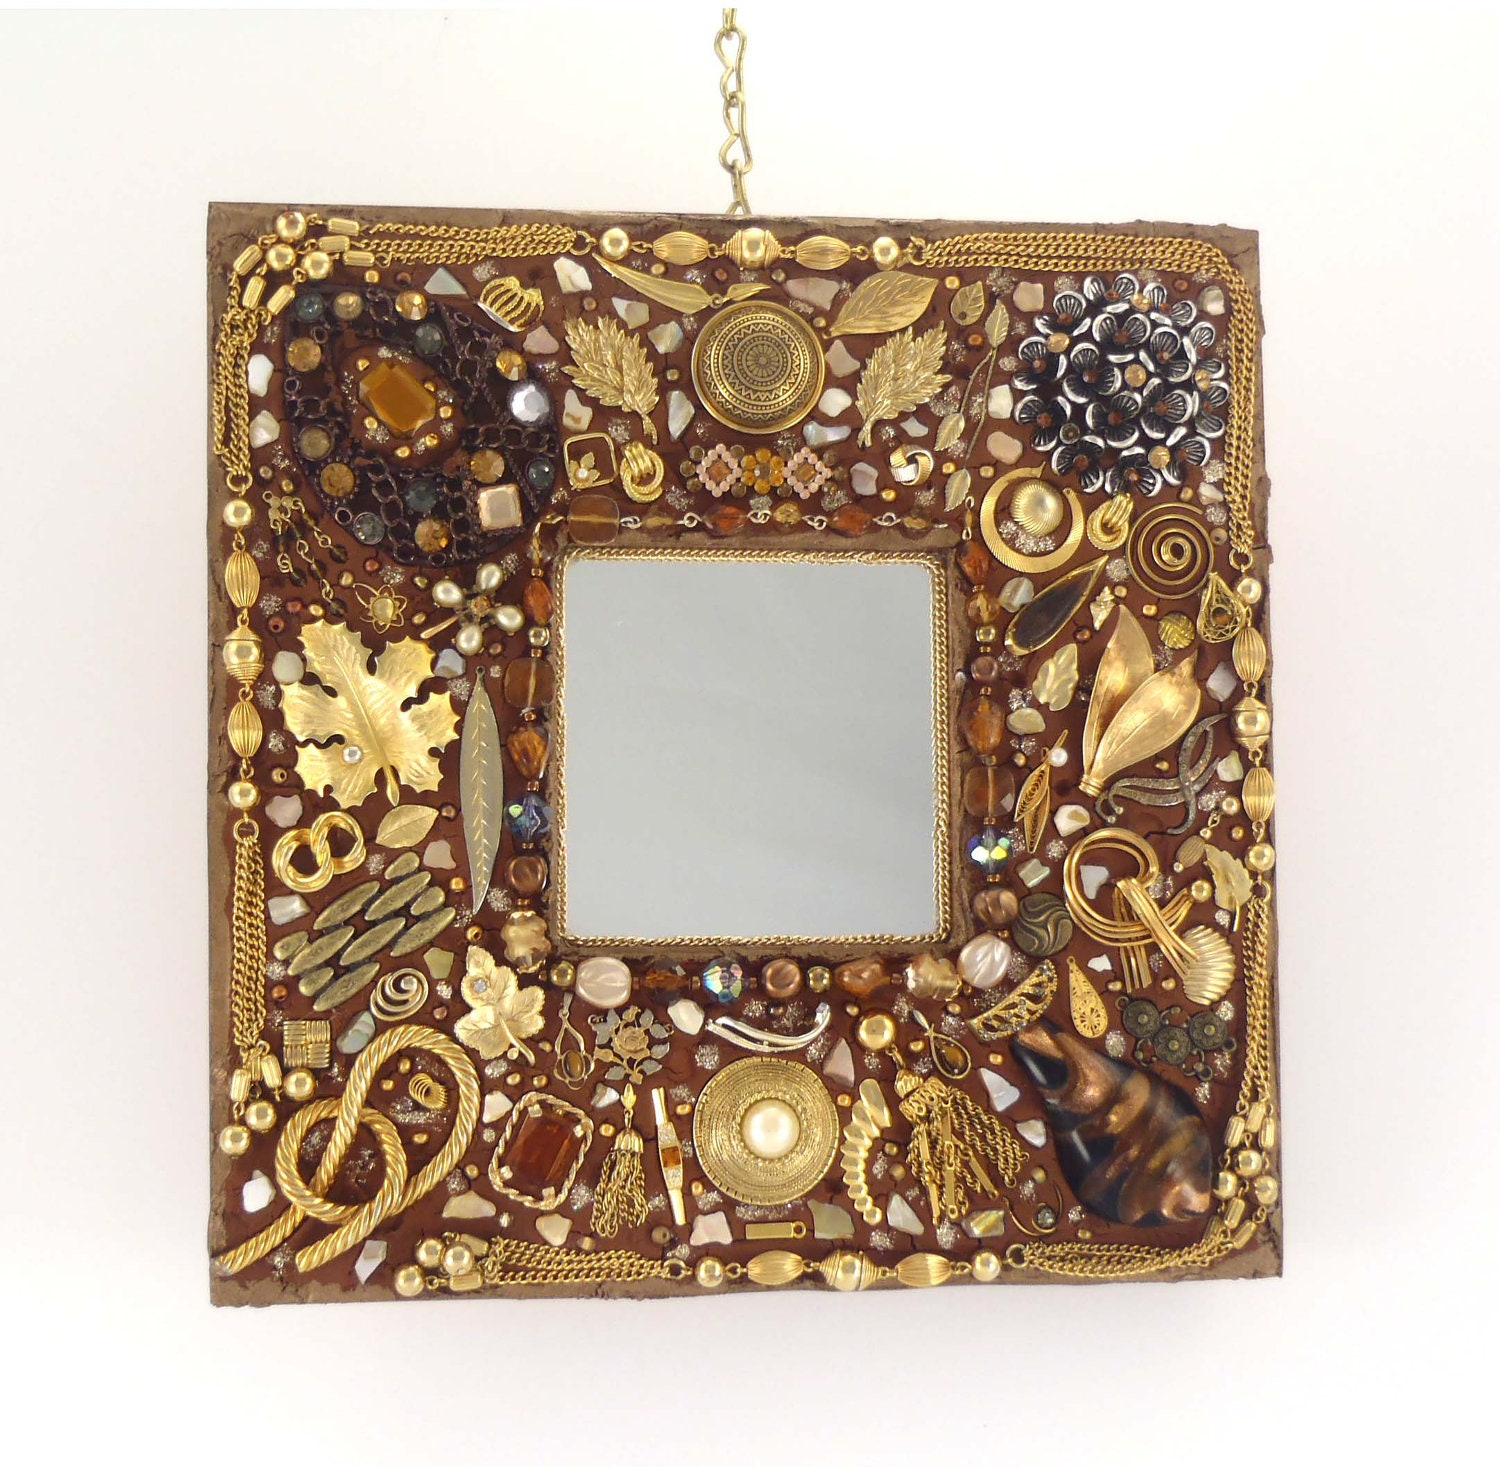 Decorative Jeweled Wall Mirror Jewelry Frame Brown And